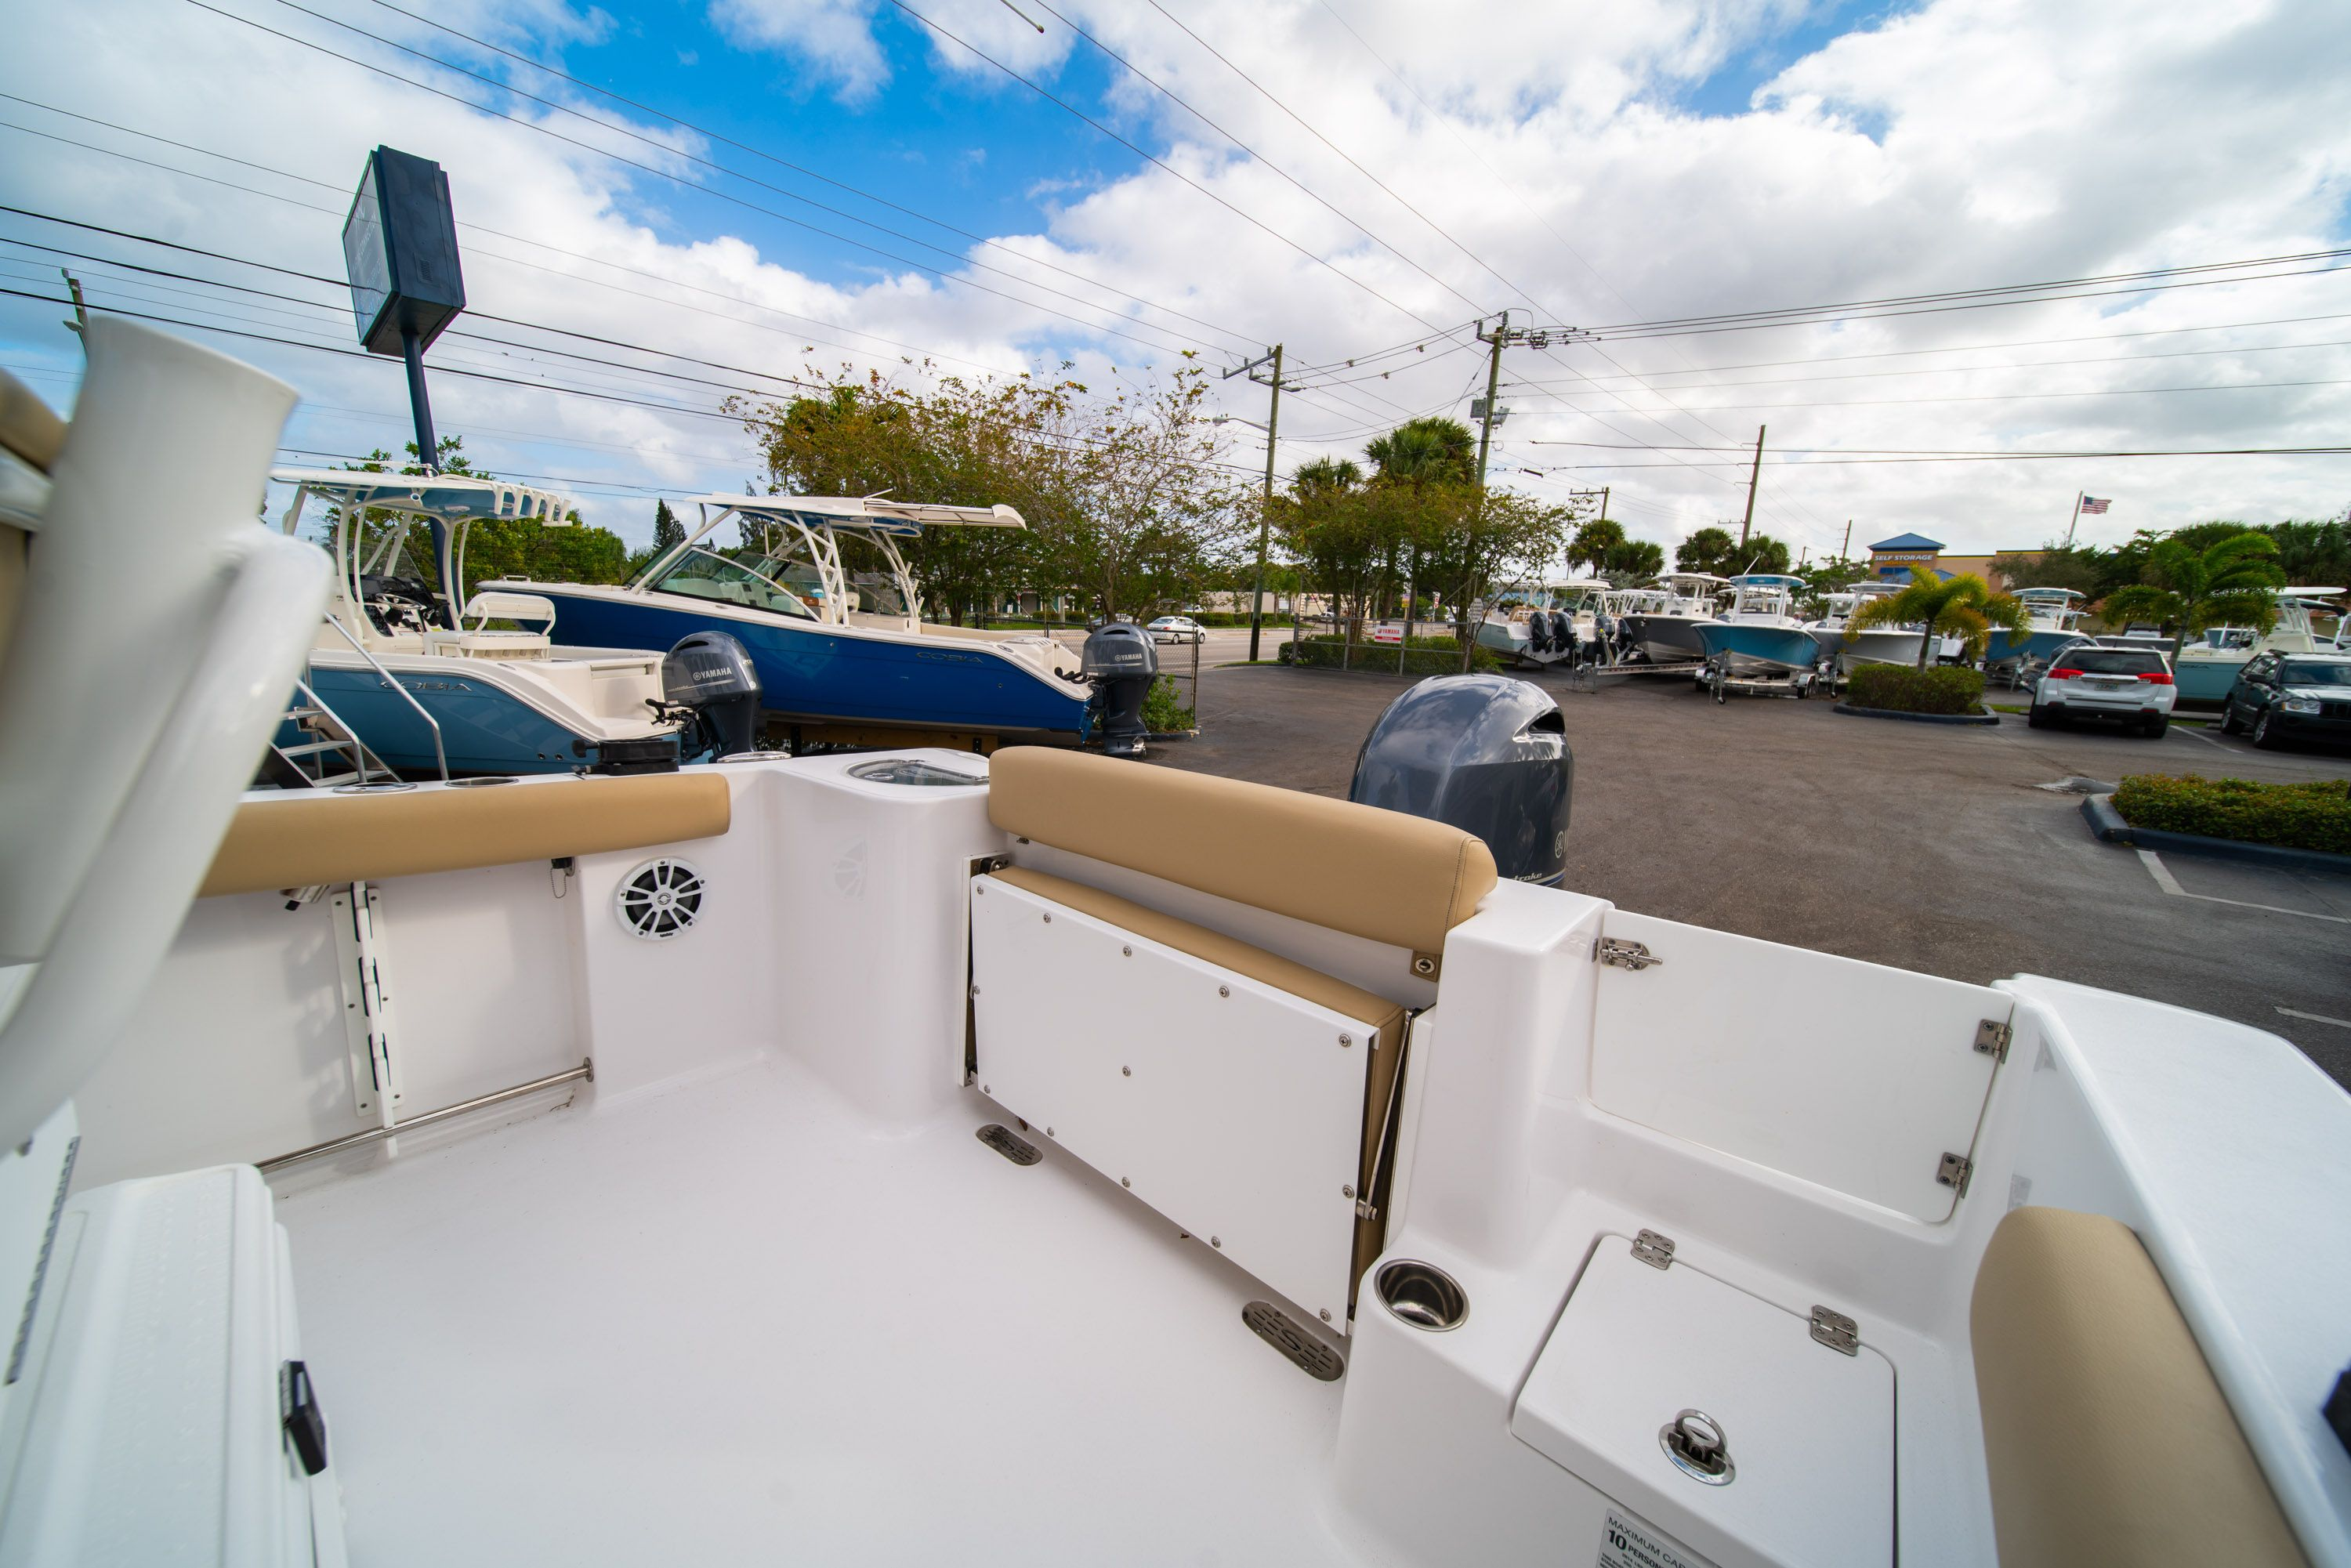 Thumbnail 13 for Used 2018 Sportsman Open 232 Center Console boat for sale in West Palm Beach, FL